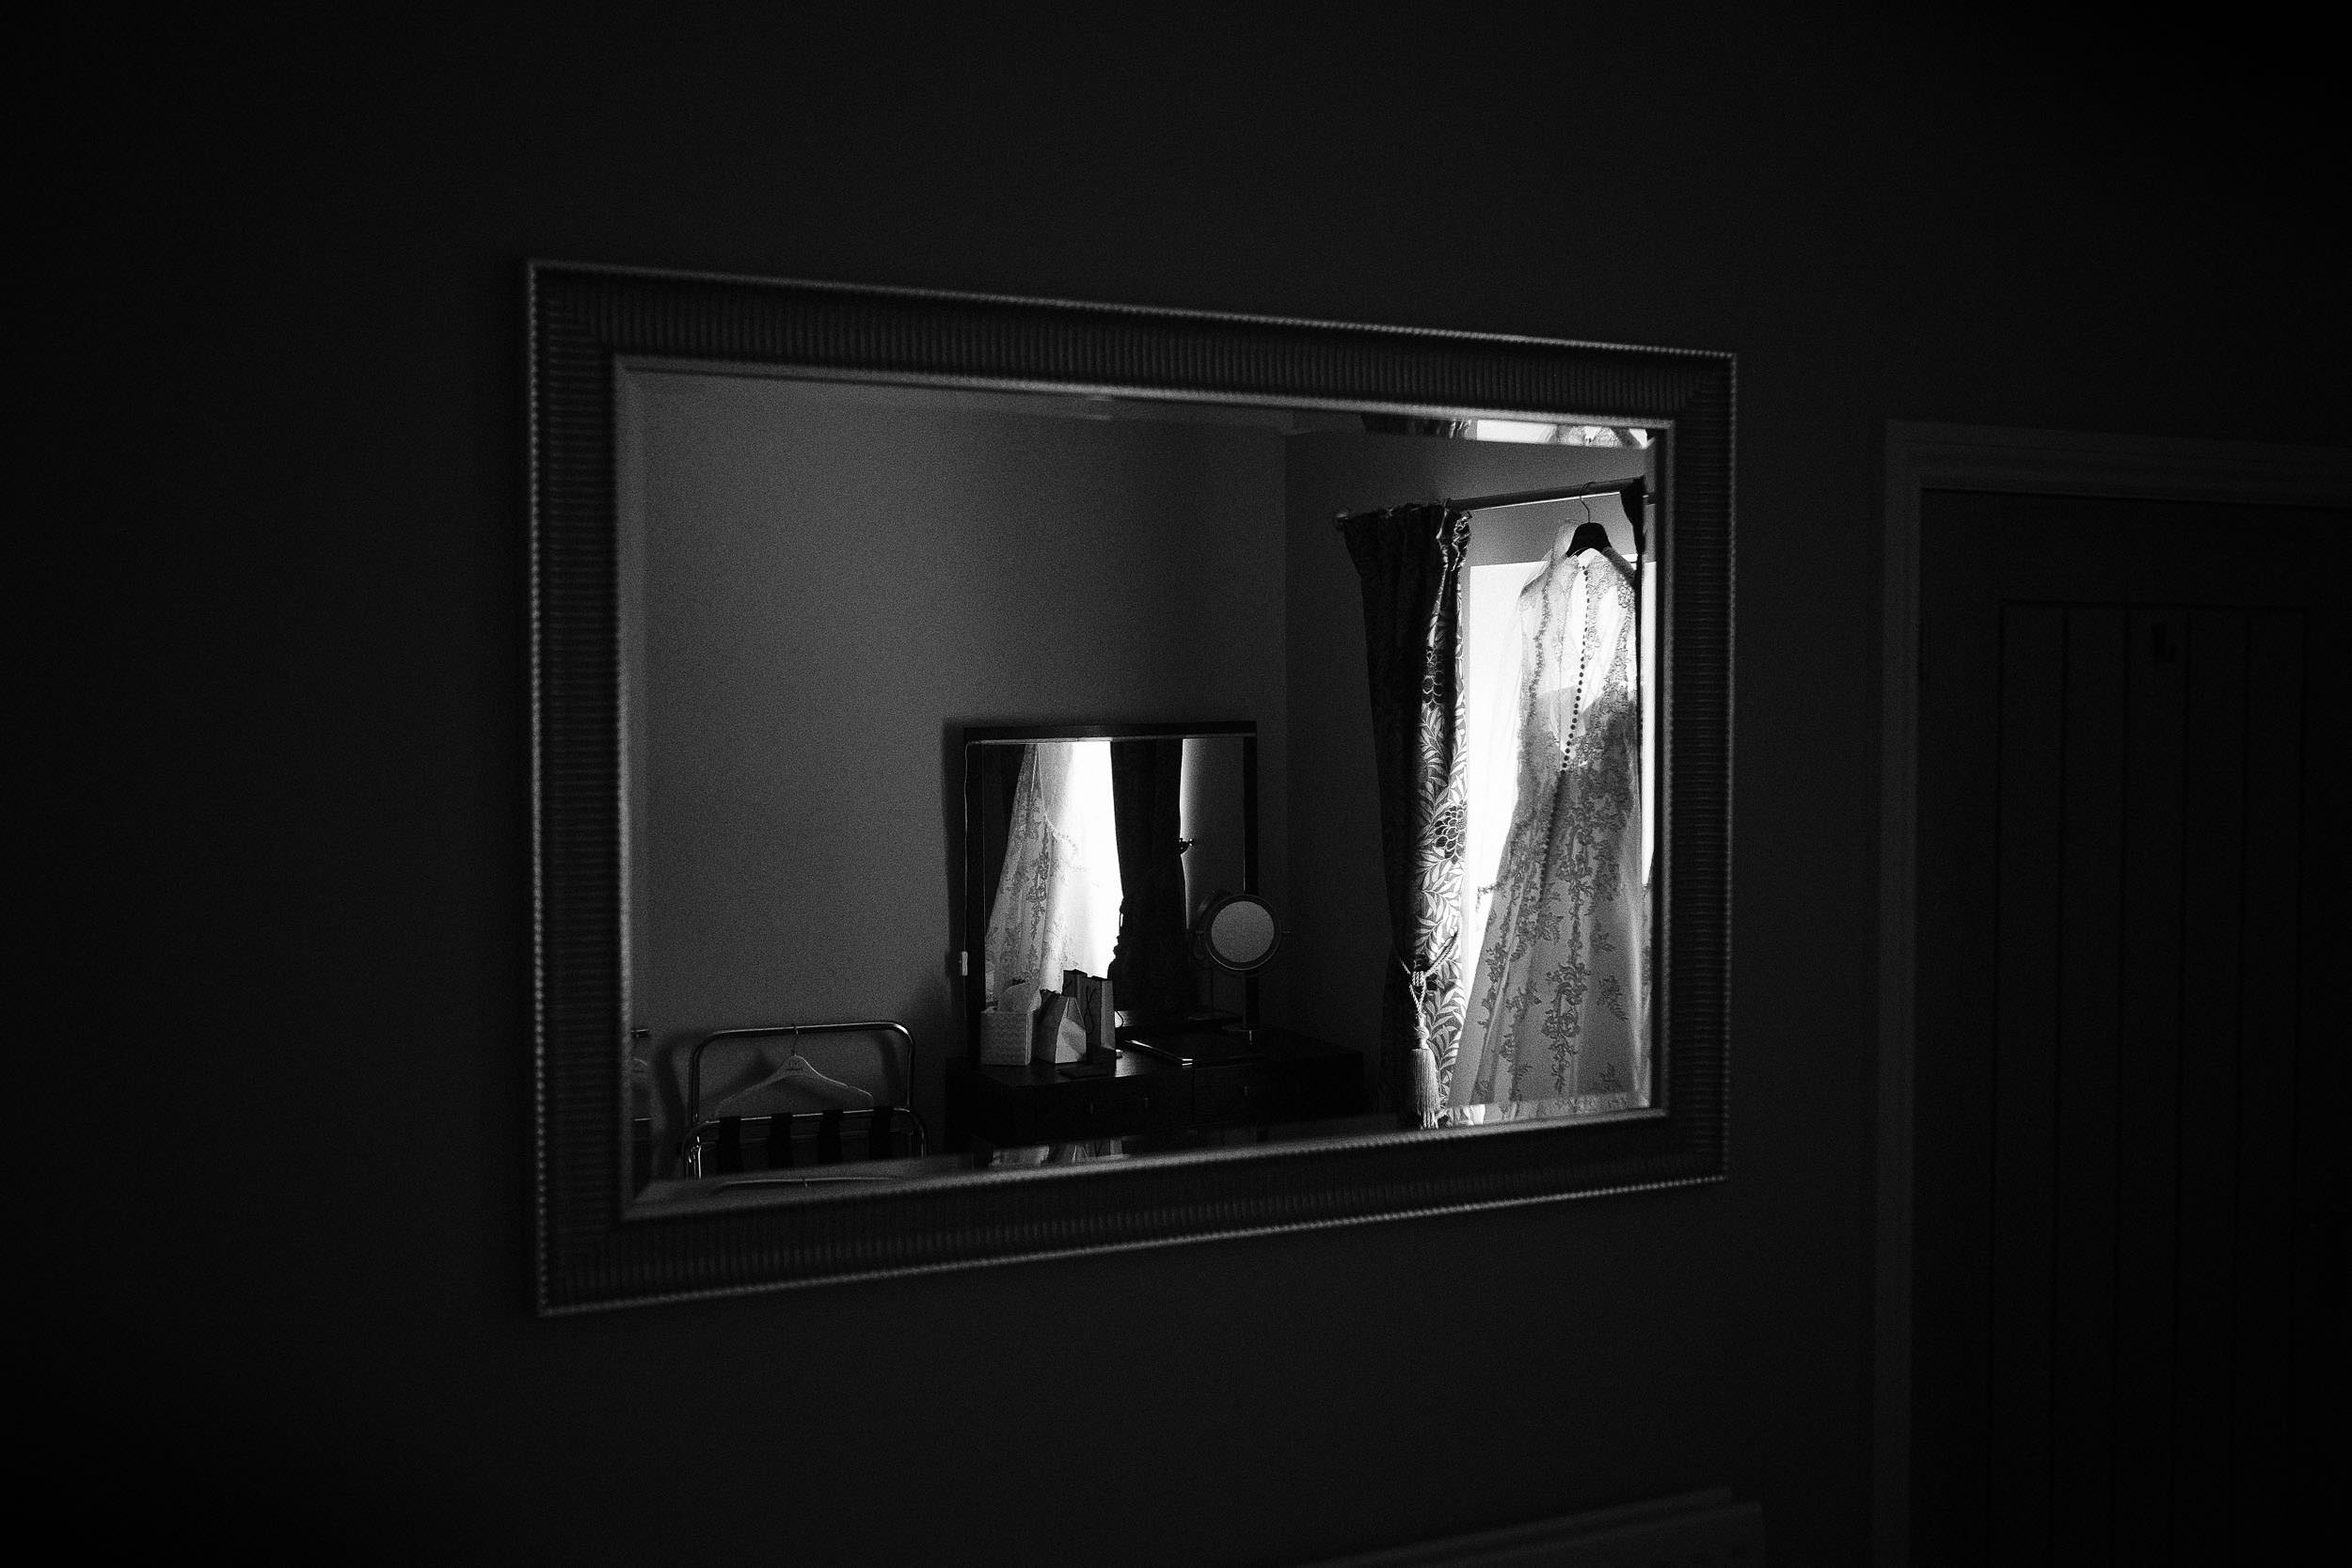 Black and white photo of dress hanging in window reflected in mirror